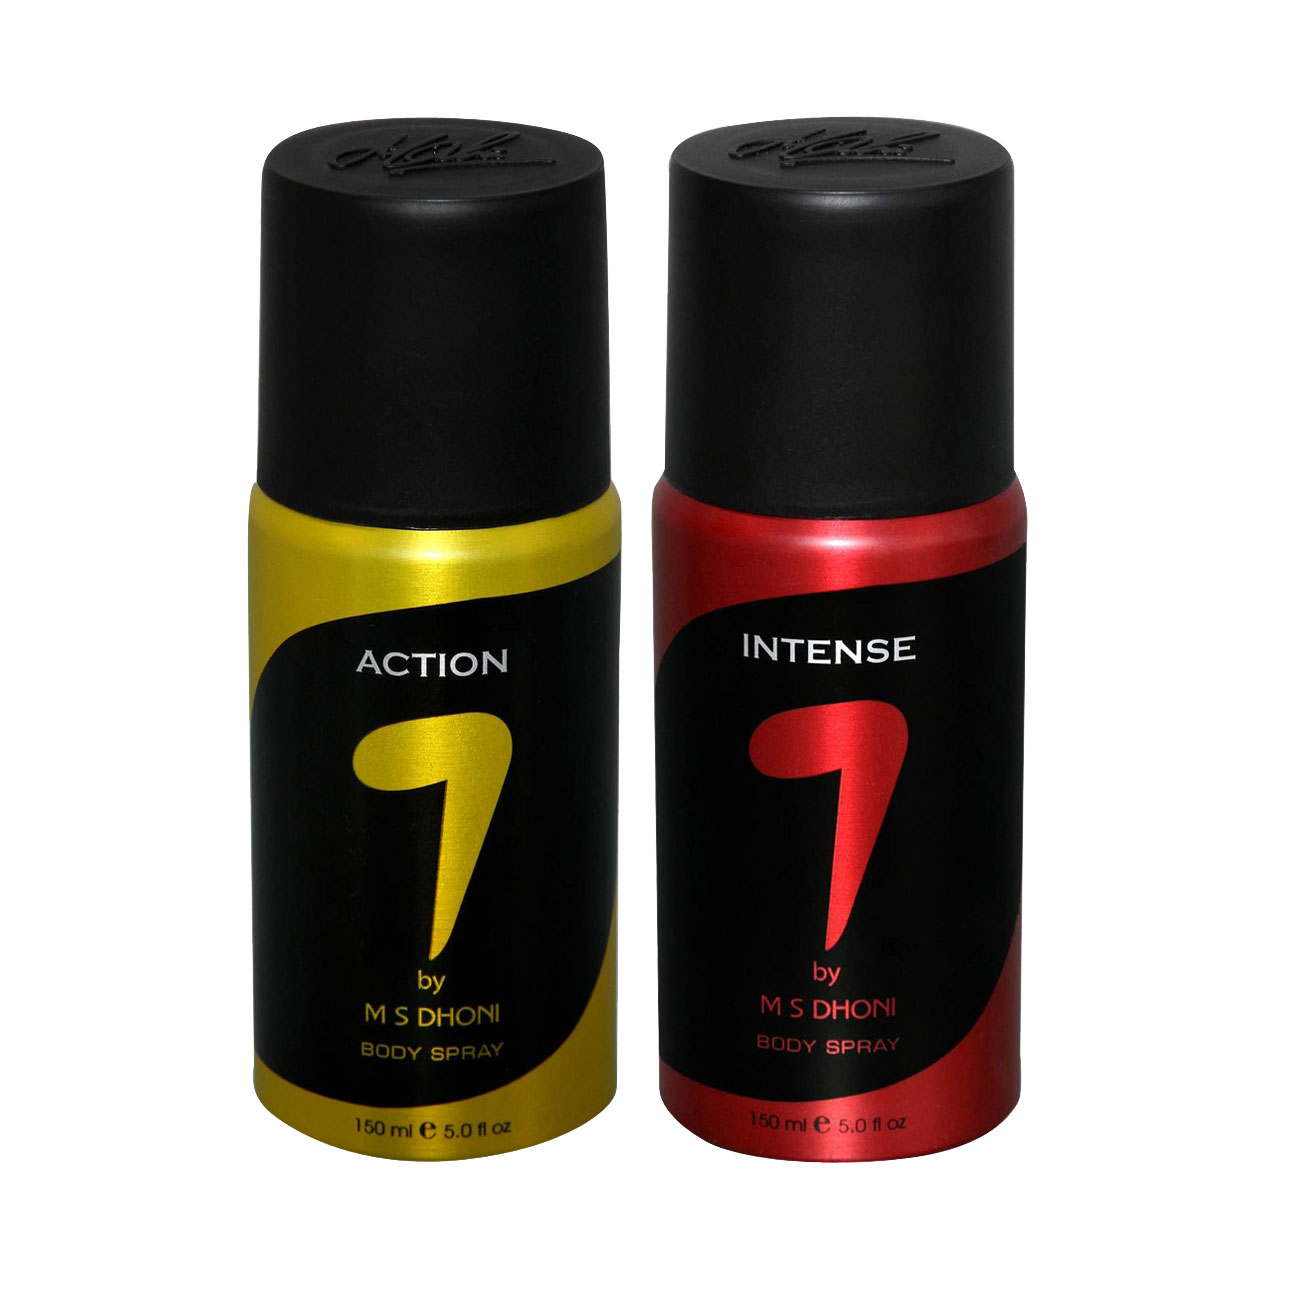 7 by MS Dhoni Action, Intense Pack of 2 Deodorants